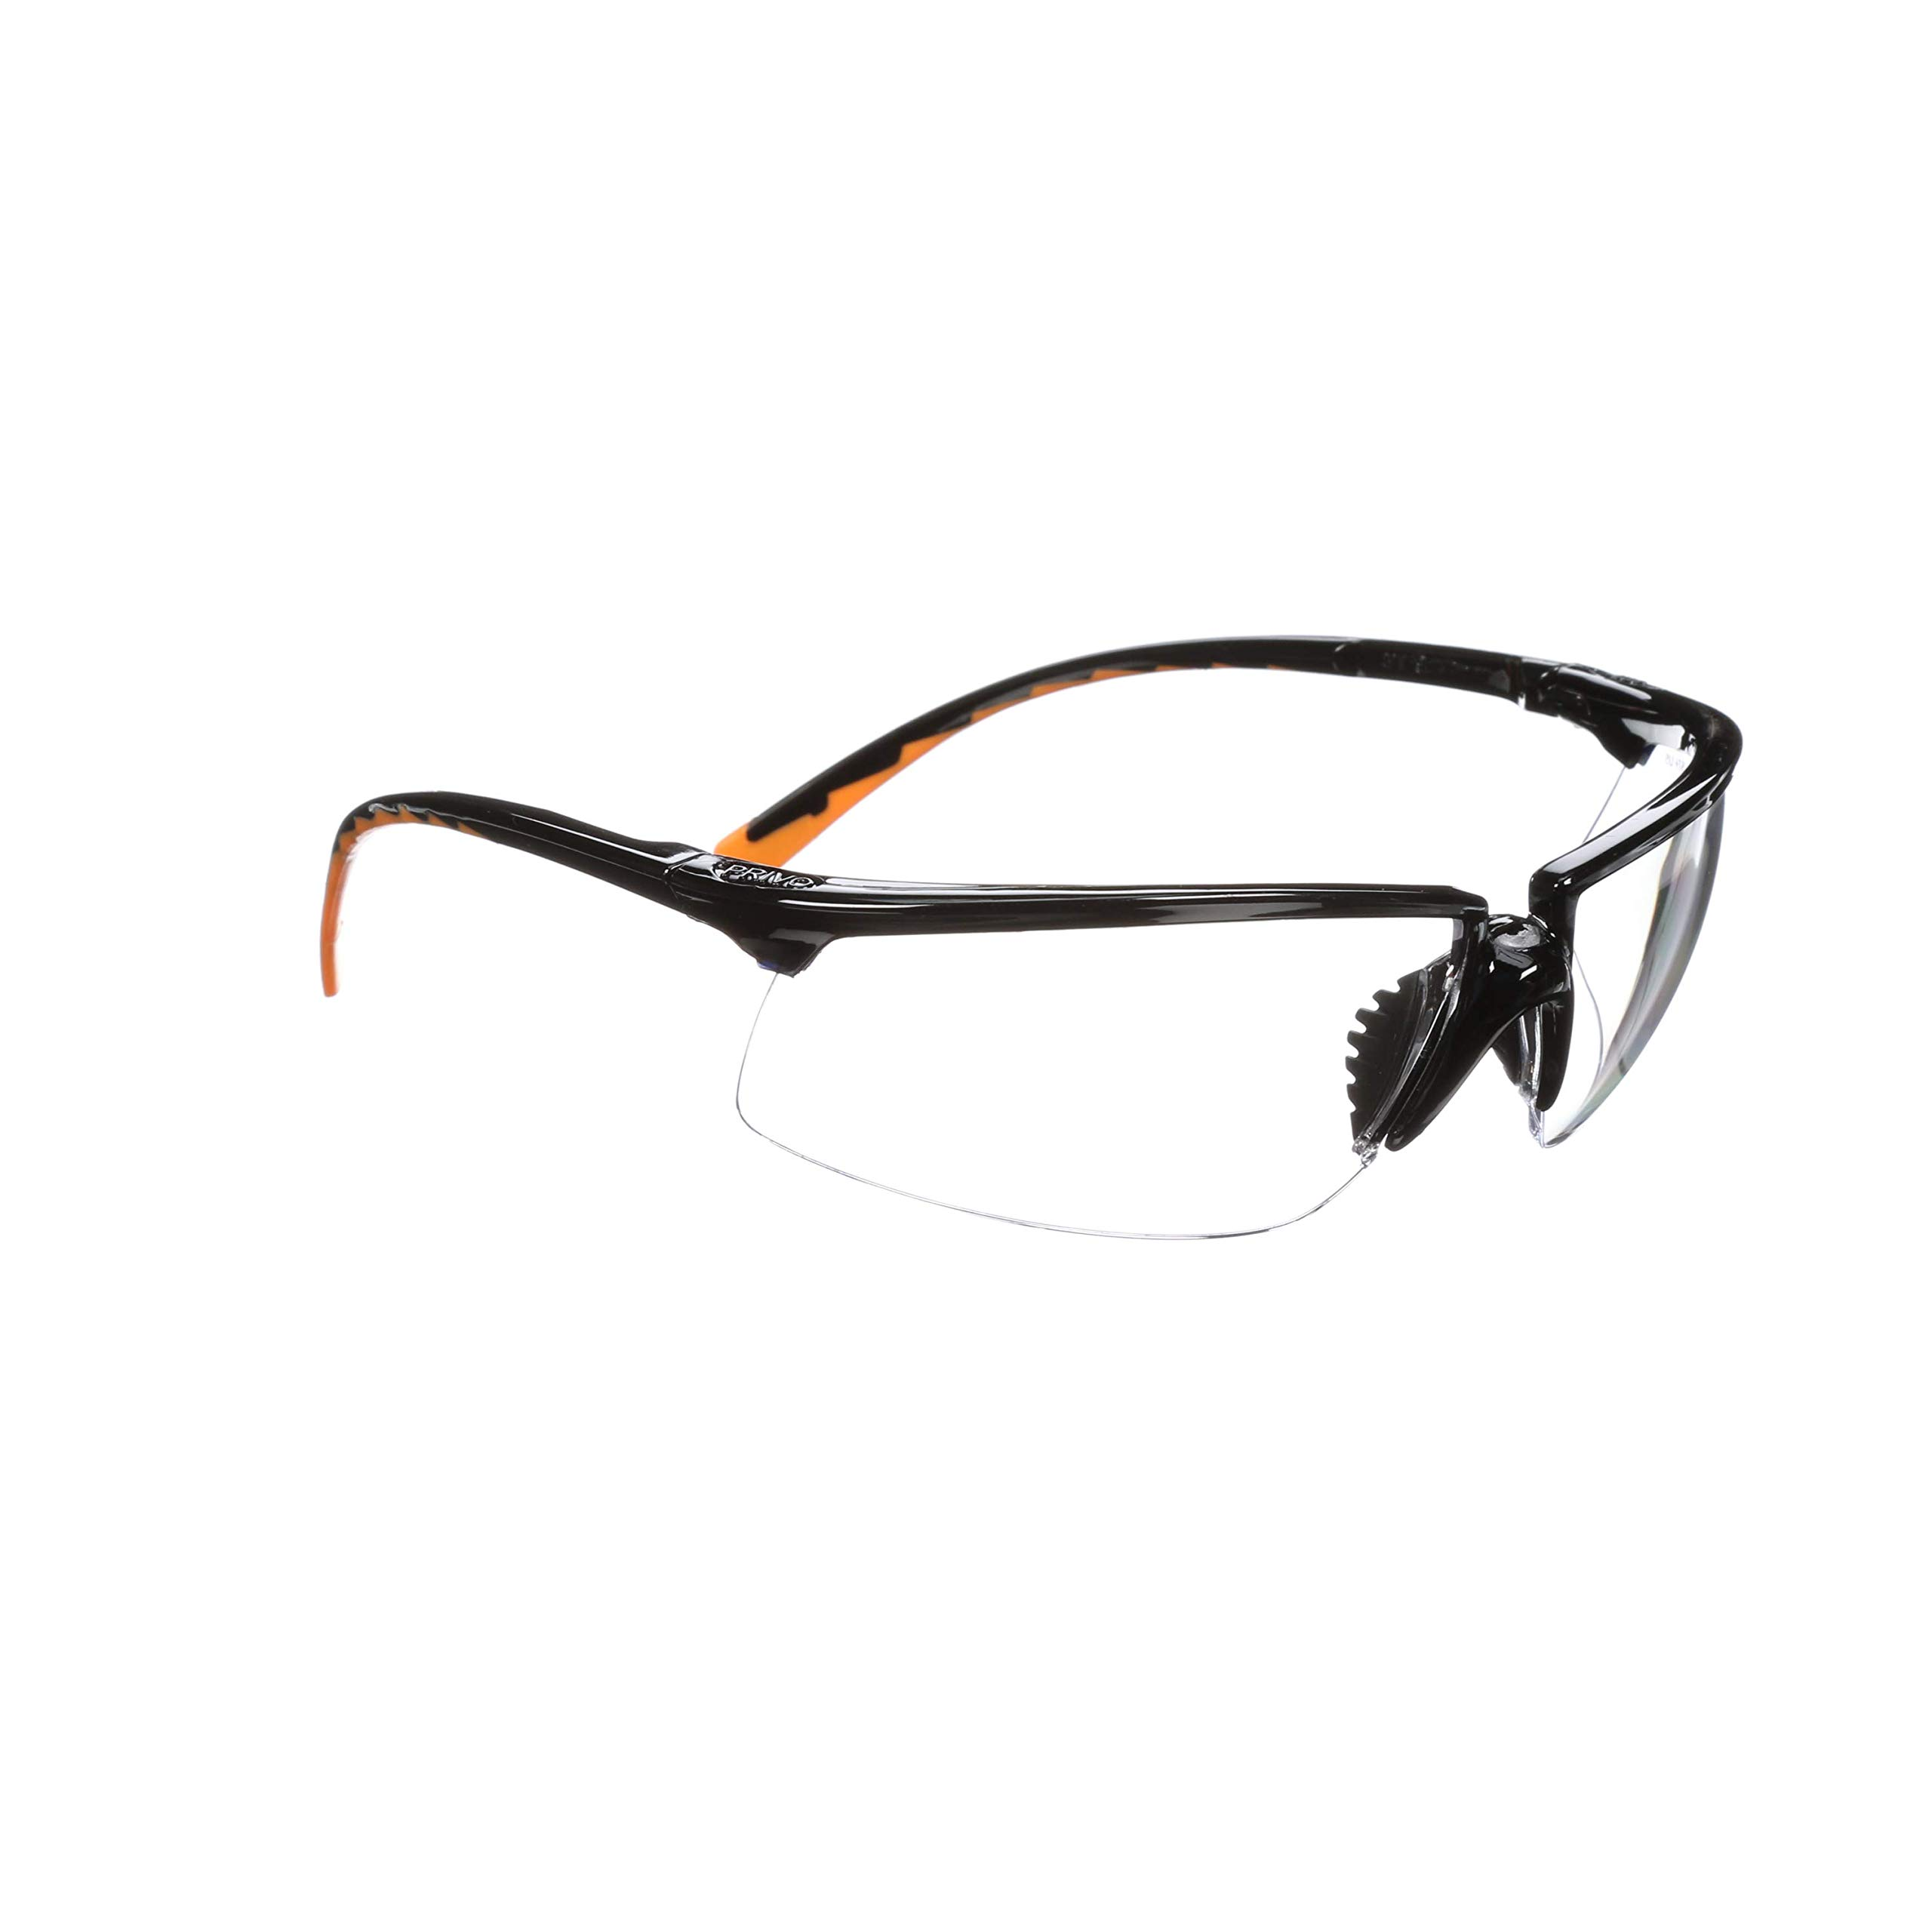 3M Privo Protective Eyewear, 12261-00000-20 Clear Anti-Fog Lens, Black Frame (Pack of 20) by 3M Personal Protective Equipment (Image #2)